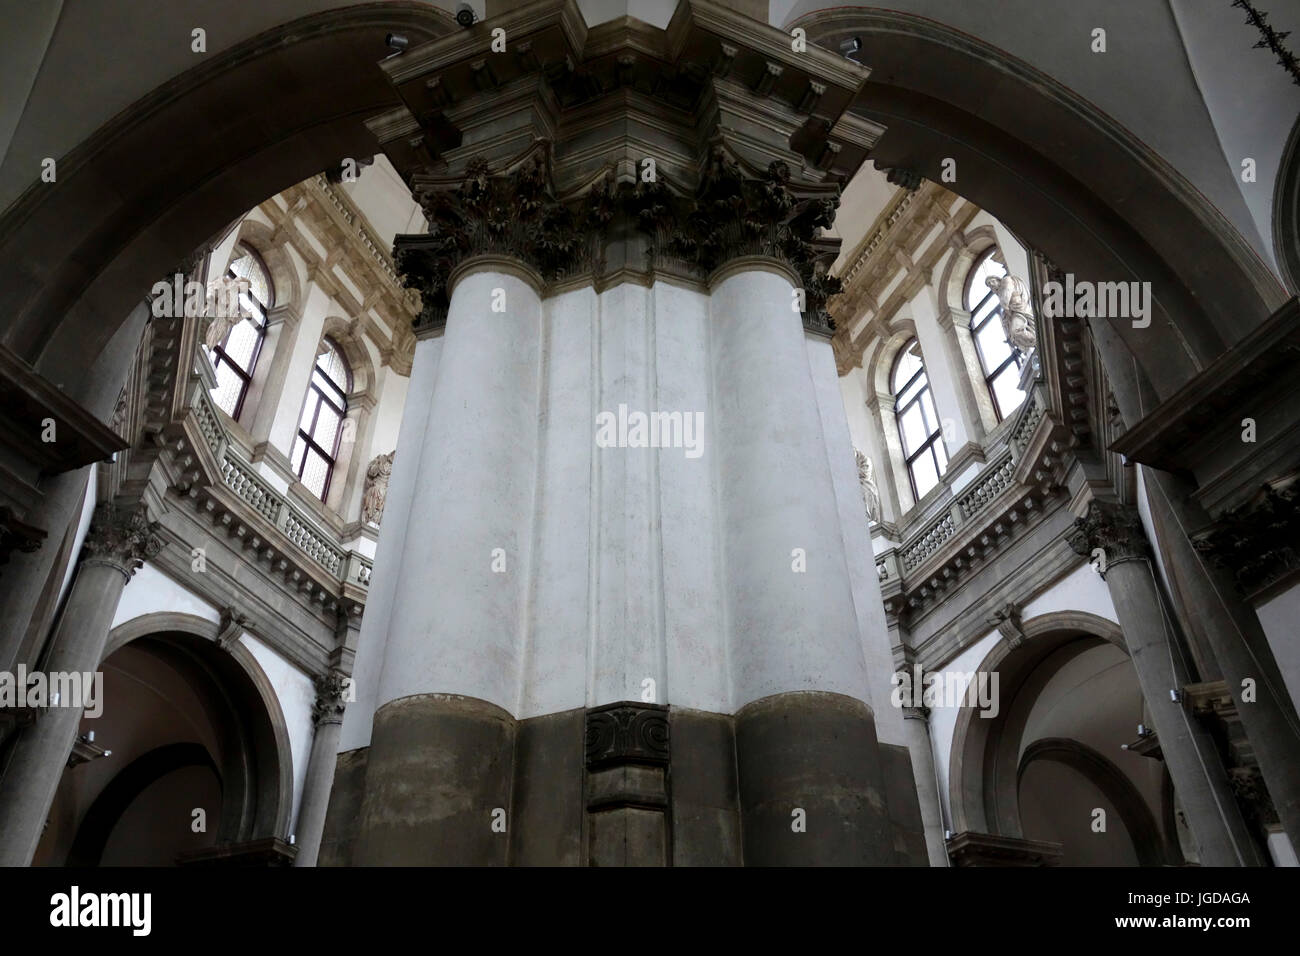 church interior, Venice, Italy. - Stock Image